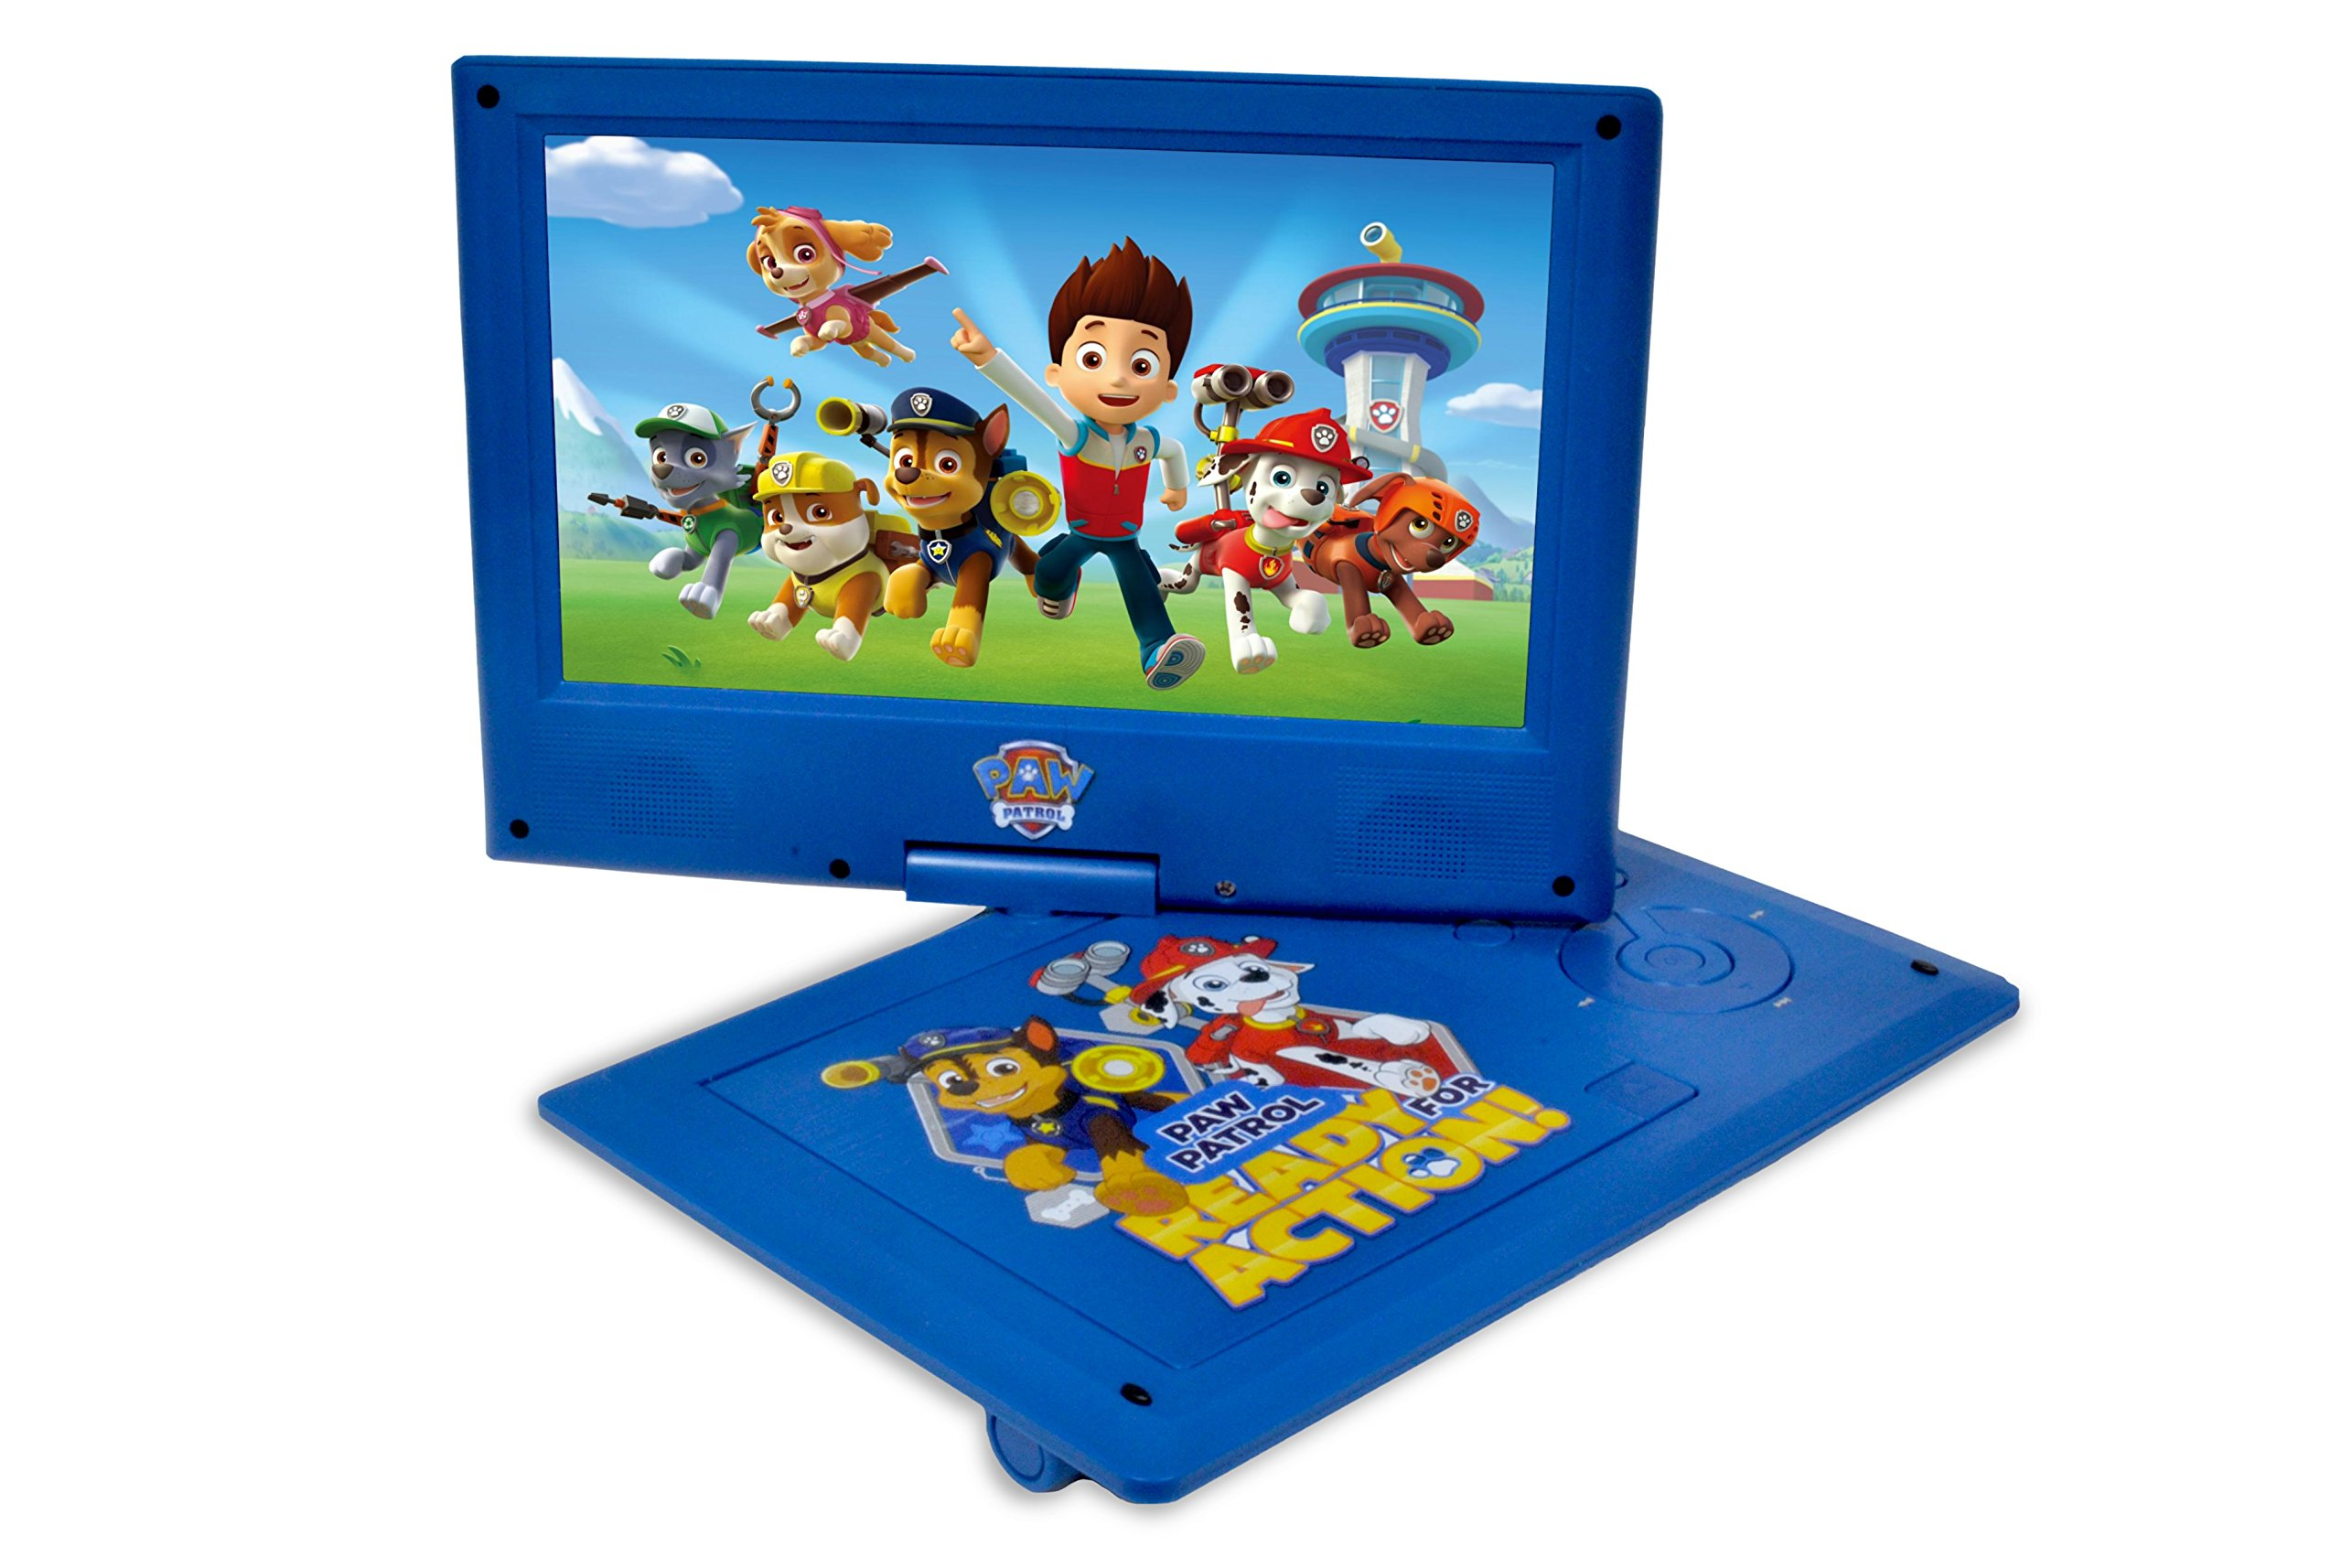 Ematic NPW7221PW Nickelodeons Paw Patrol Theme Portable DVD Player with 9-Inch Swivel Screen, Travel Bag and Headphones, Blue by Ematic (Image #3)